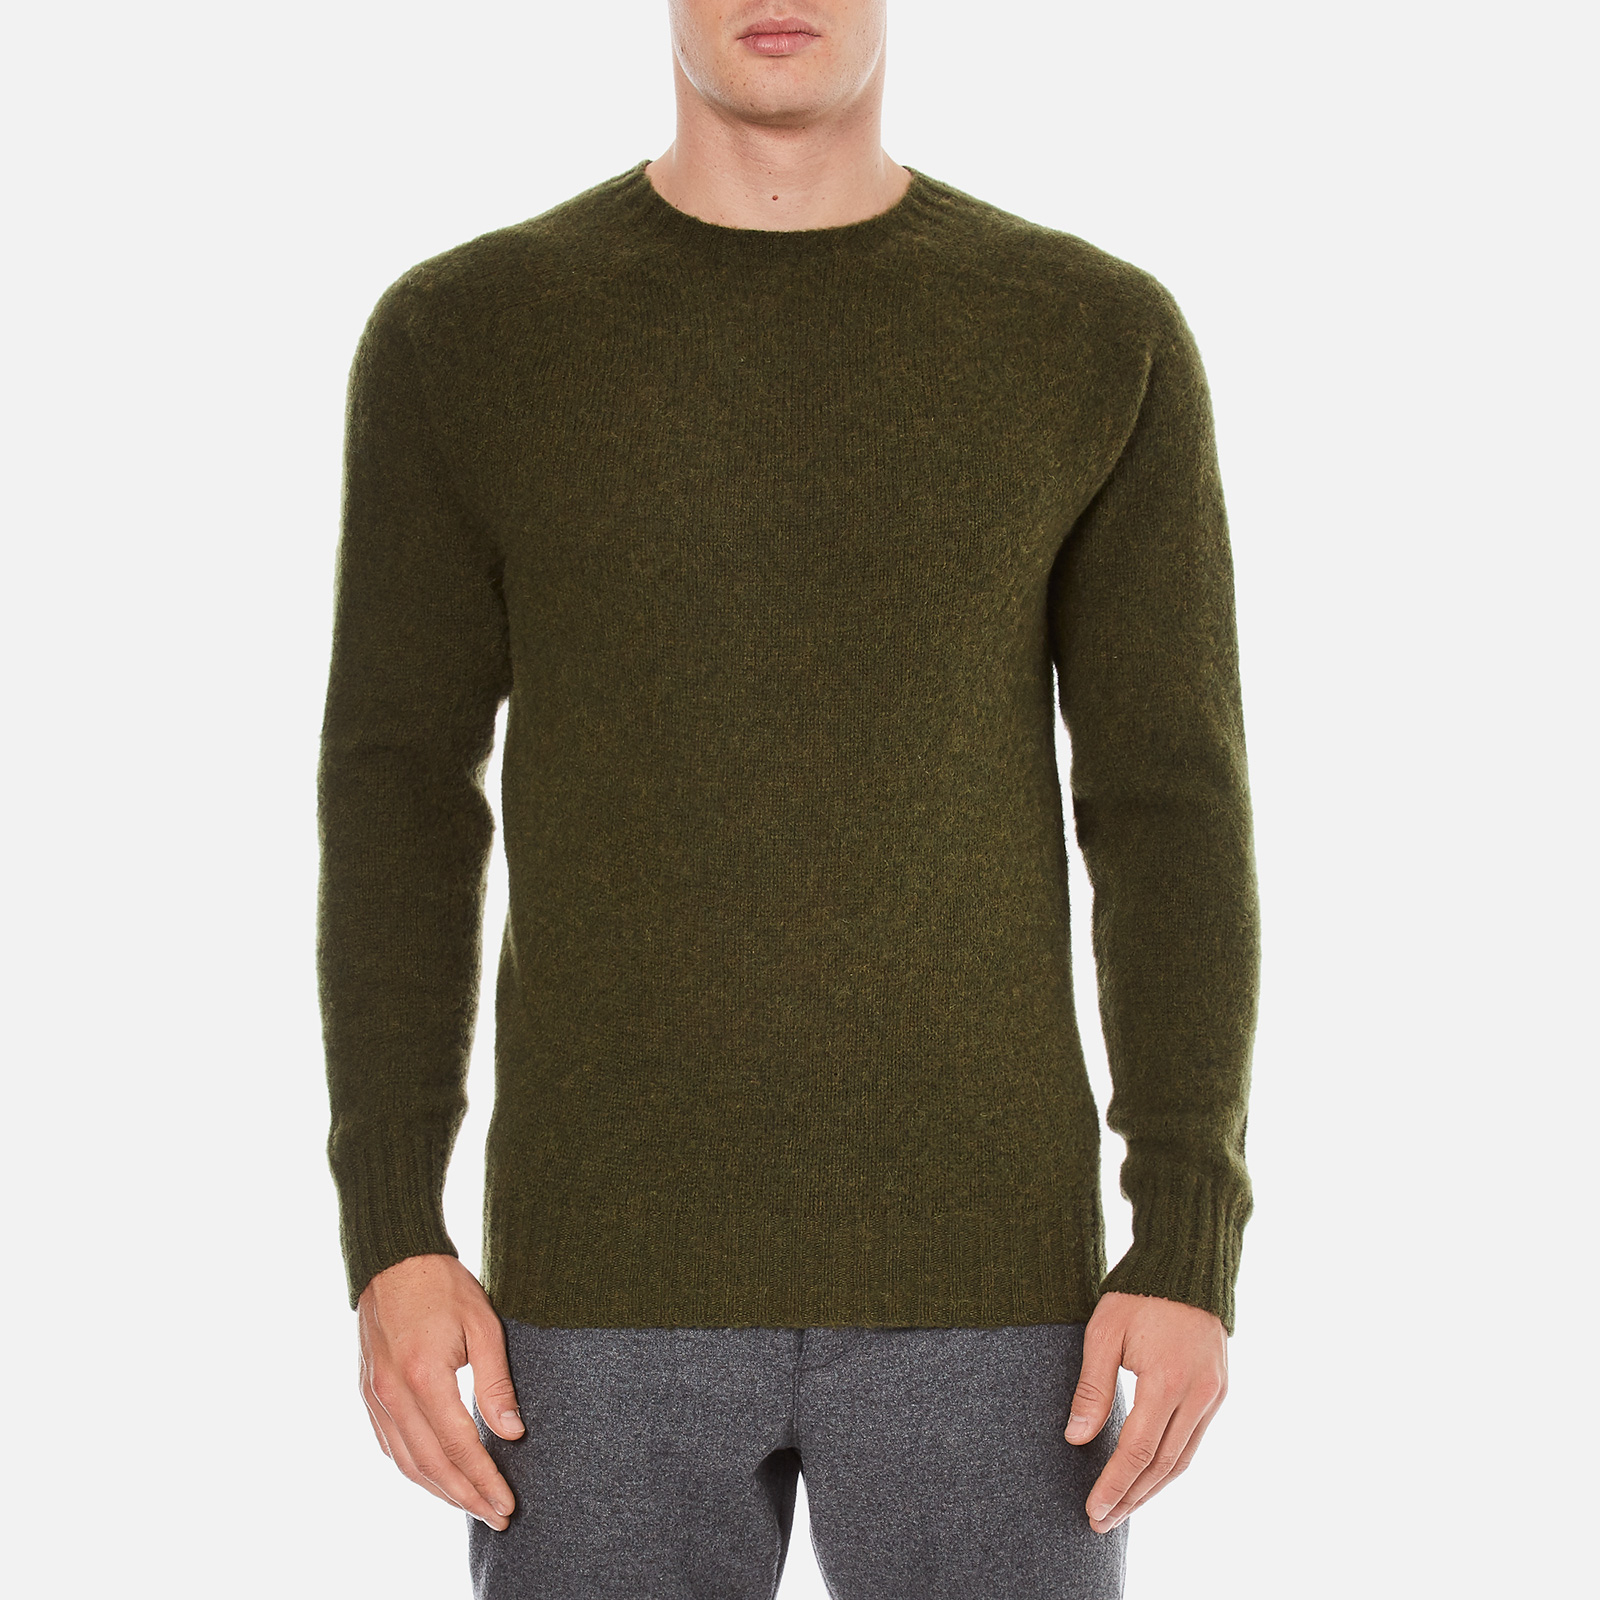 c03f04e521305a YMC Men s Suedehead Brushed Jumper - Loden - Free UK Delivery over £50